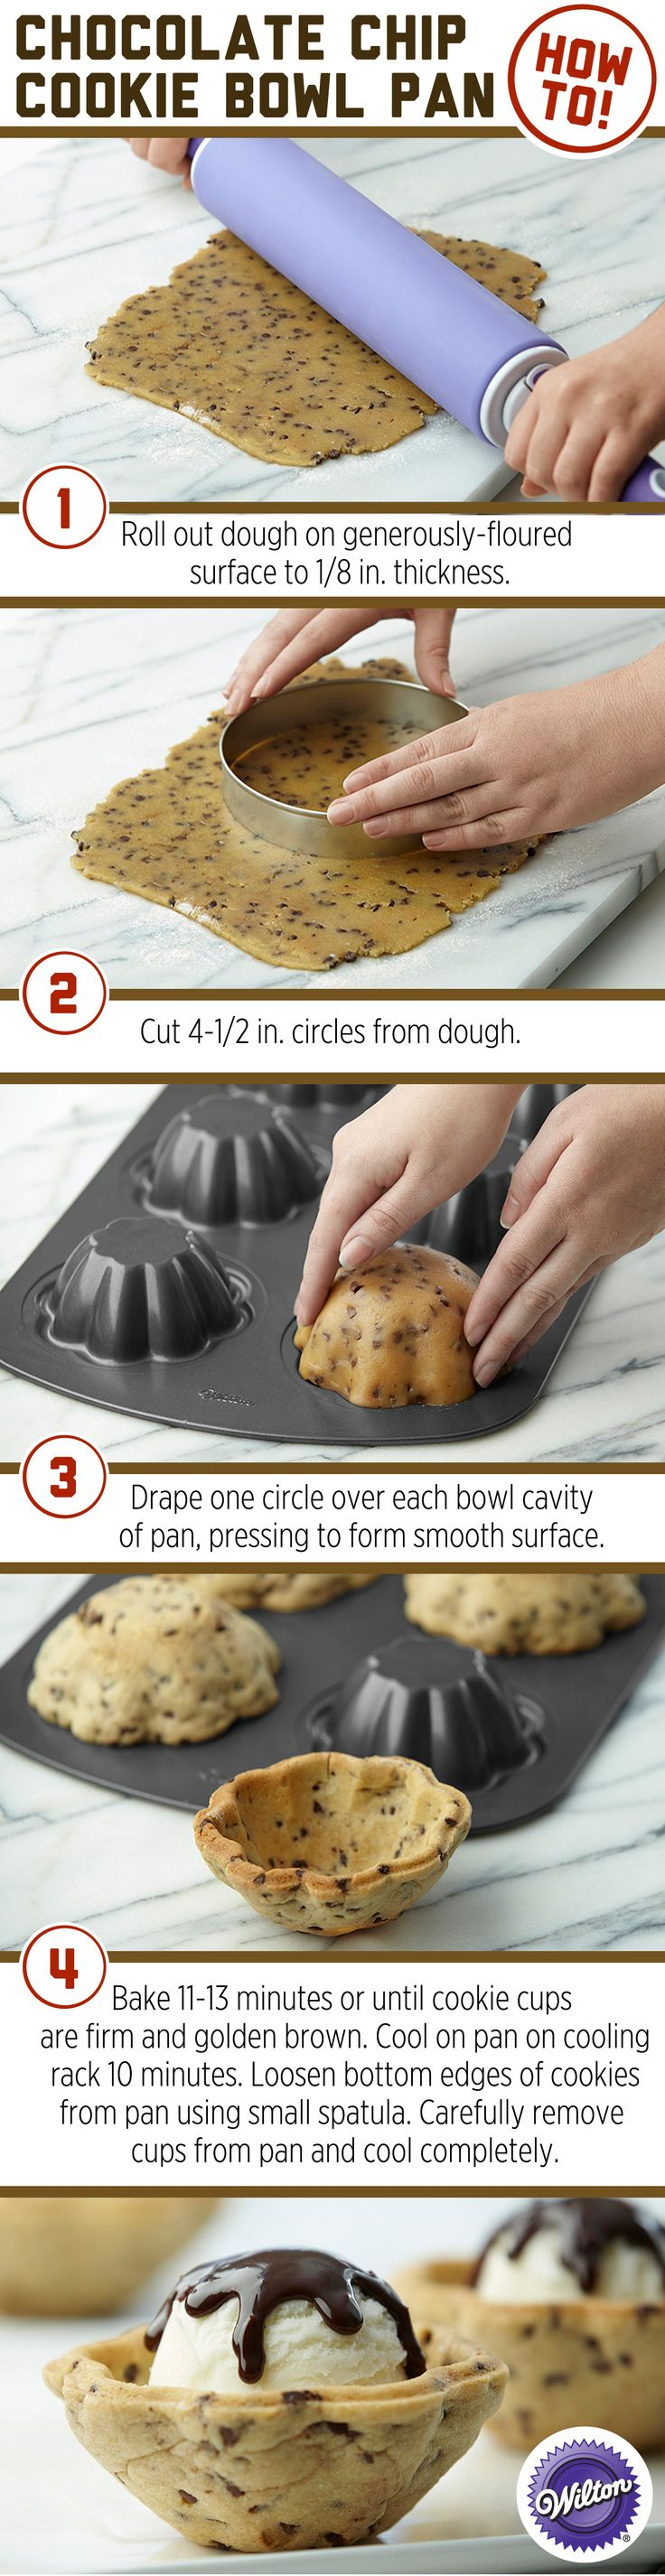 How to make a Chocolate Chip Cookie Bowl using the Wilton Cookie Bowl Pan Those are my hands ;)